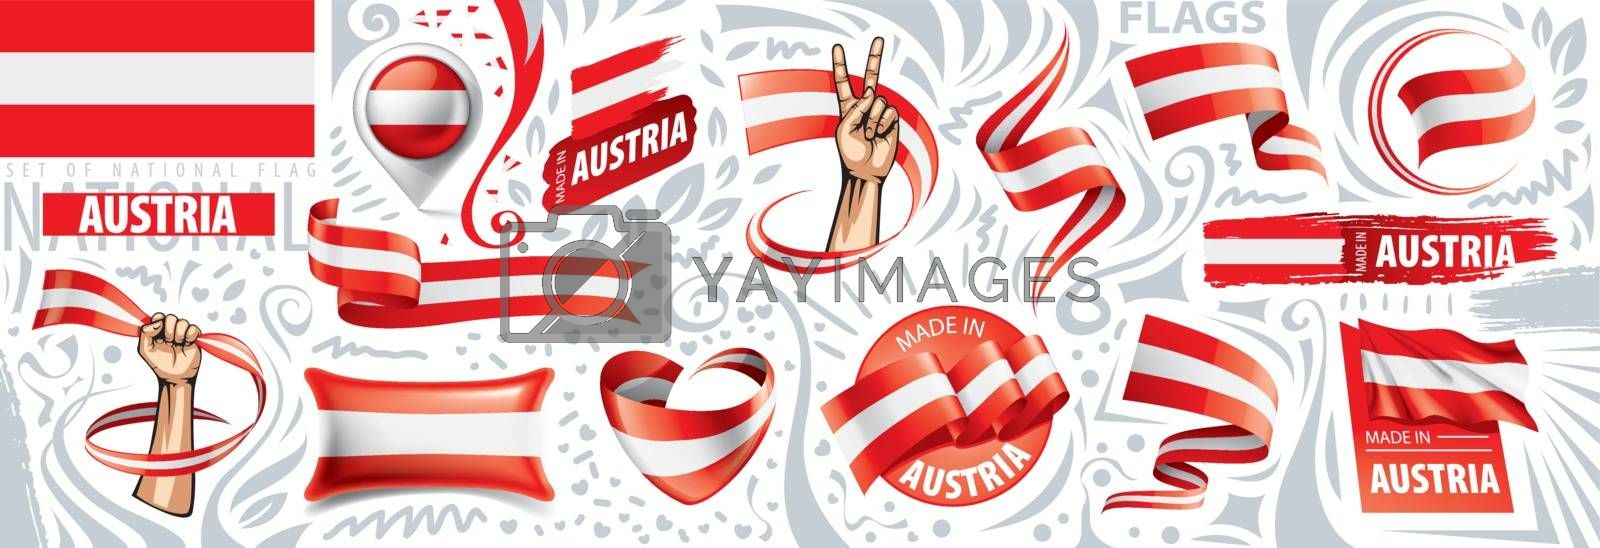 Vector set of the national flag of Austria in various creative designs.